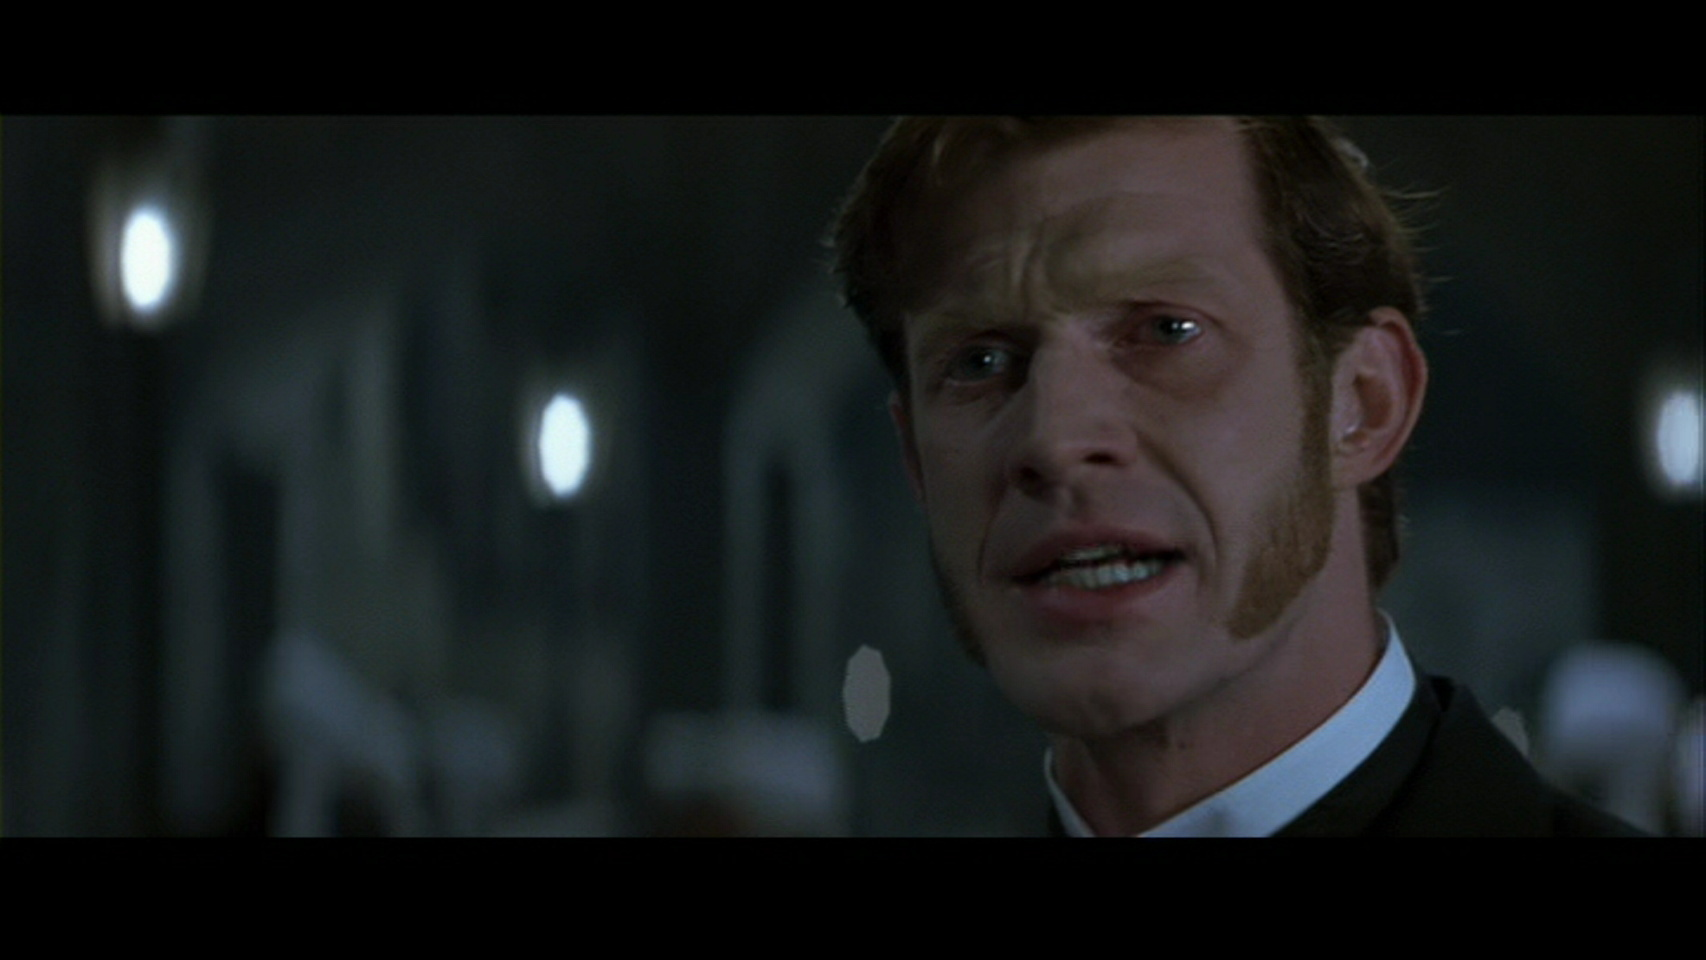 jason flemyng twitterjason flemyng wiki, jason flemyng height, jason flemyng net worth, jason flemyng transporter 2, jason flemyng instagram, jason flemyng imdb, jason flemyng wikipedia, jason flemyng, jason flemyng azazel, jason flemyng twitter, jason flemyng jamie oliver, jason flemyng lock stock, jason flemyng actor, jason flemyng dr jekyll, jason flemyng facebook, jason flemyng young, jason flemyng benjamin button, jason flemyng filmography, jason flemyng wedding, jason flemyng wife